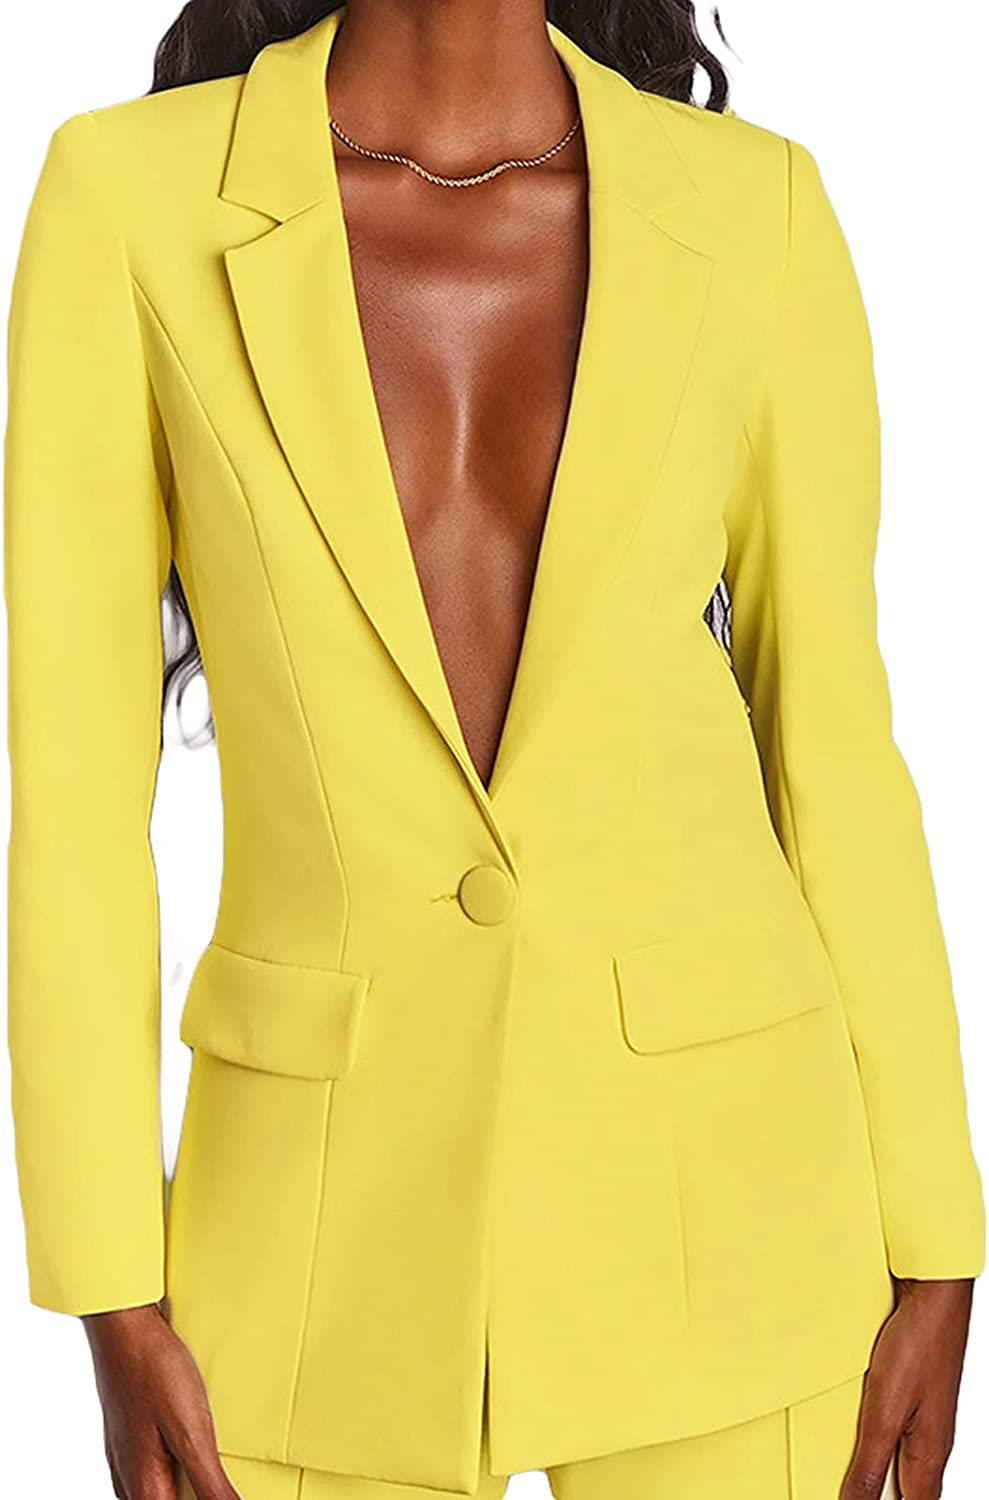 Blazer Jackets for Women Long Sleeve Single Button Tops + Long Trousers Set Loose Bussiness Casual Suit